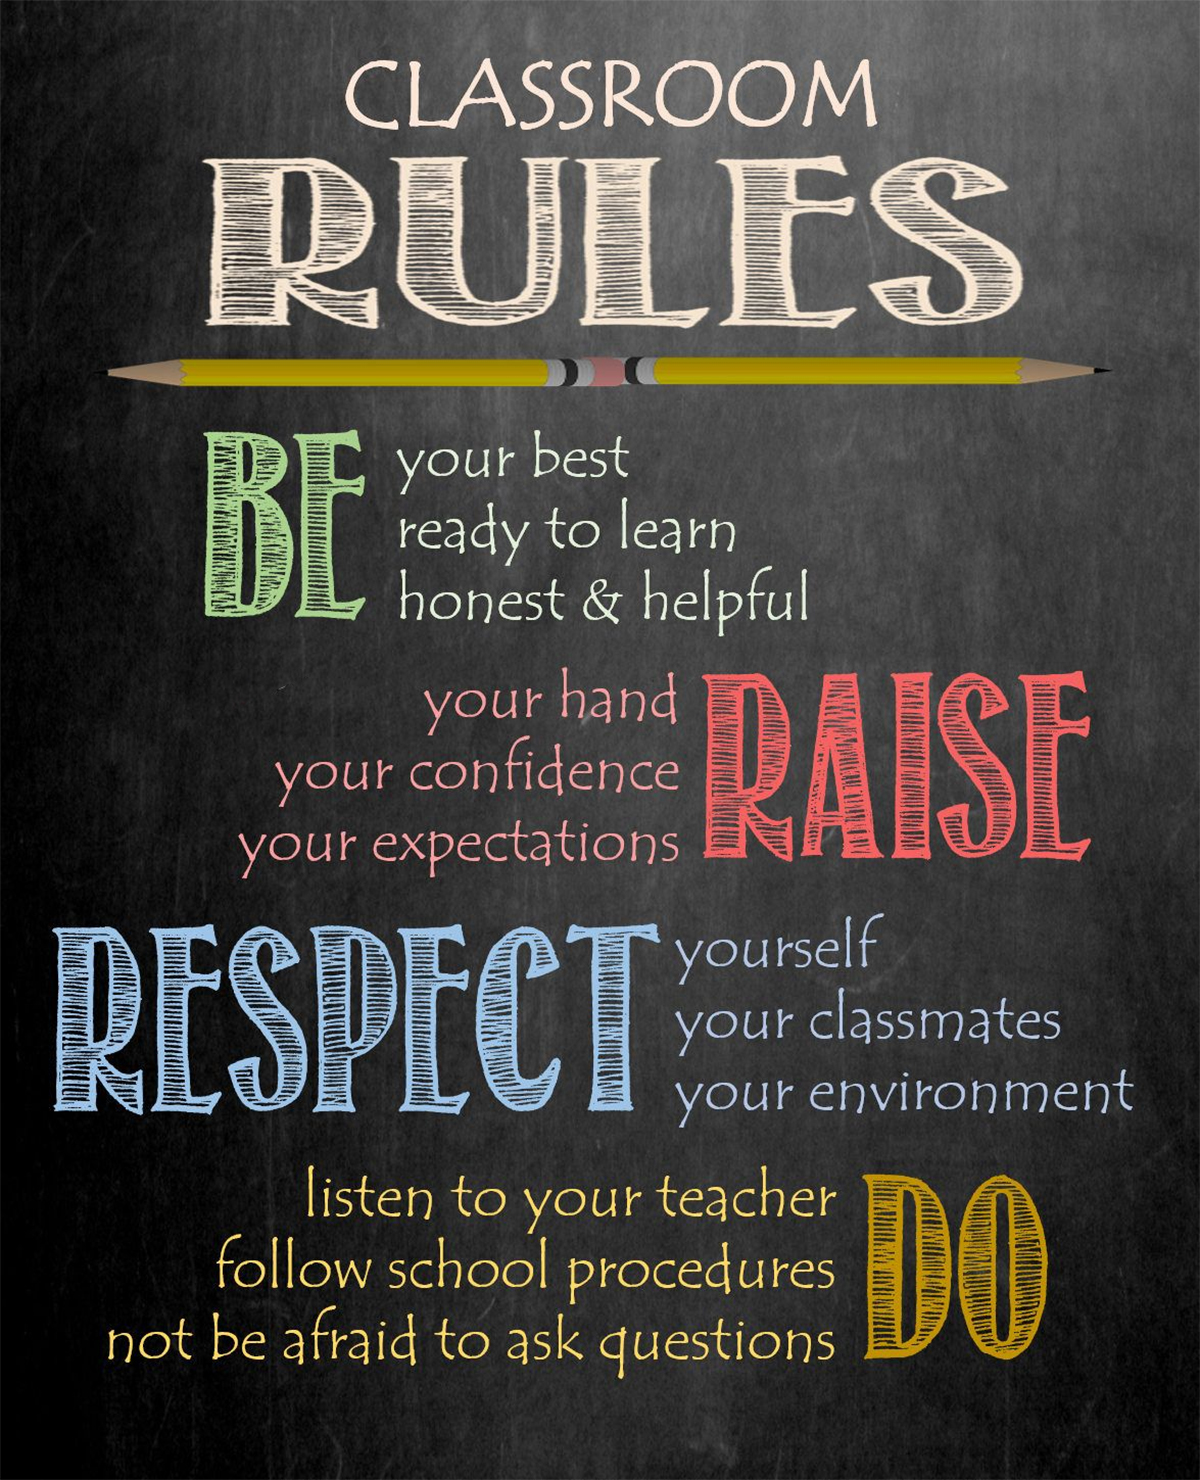 Colorful Classroom Rules on the Walls